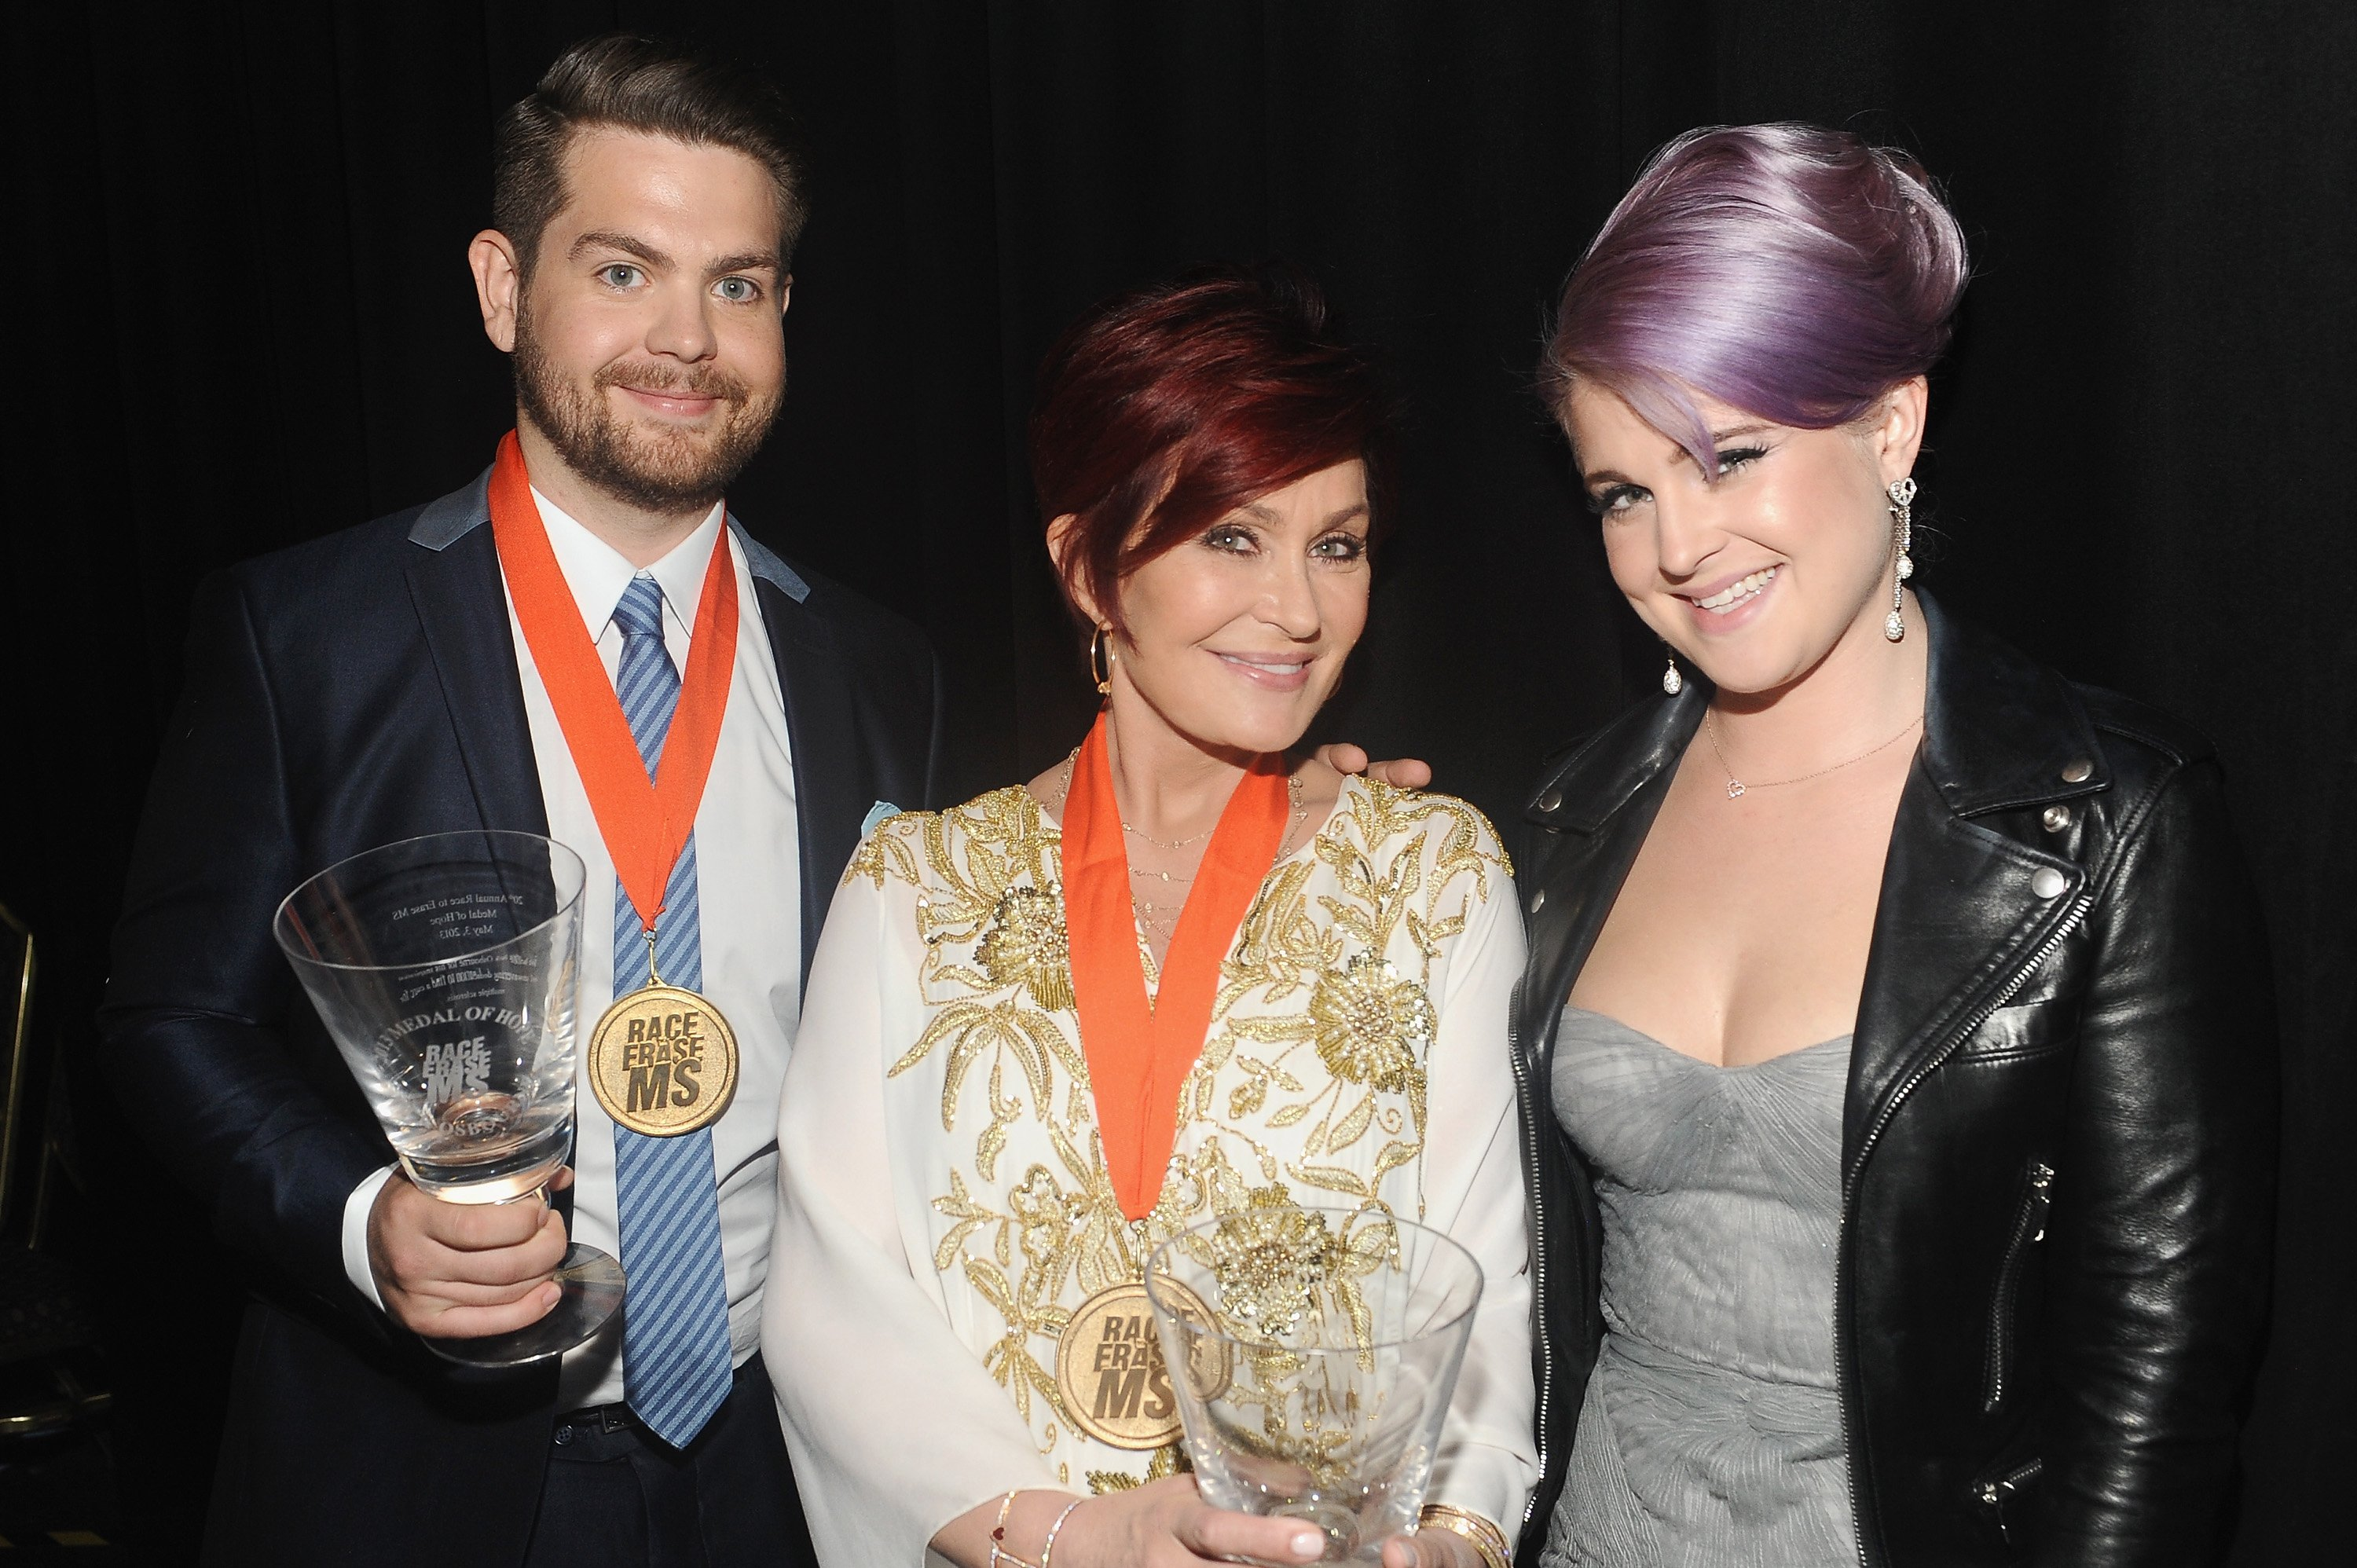 """Sharon with Kelly and Jack at  20th Annual Race To Erase MS Gala """"Love To Erase MS"""" in California, 2013. 